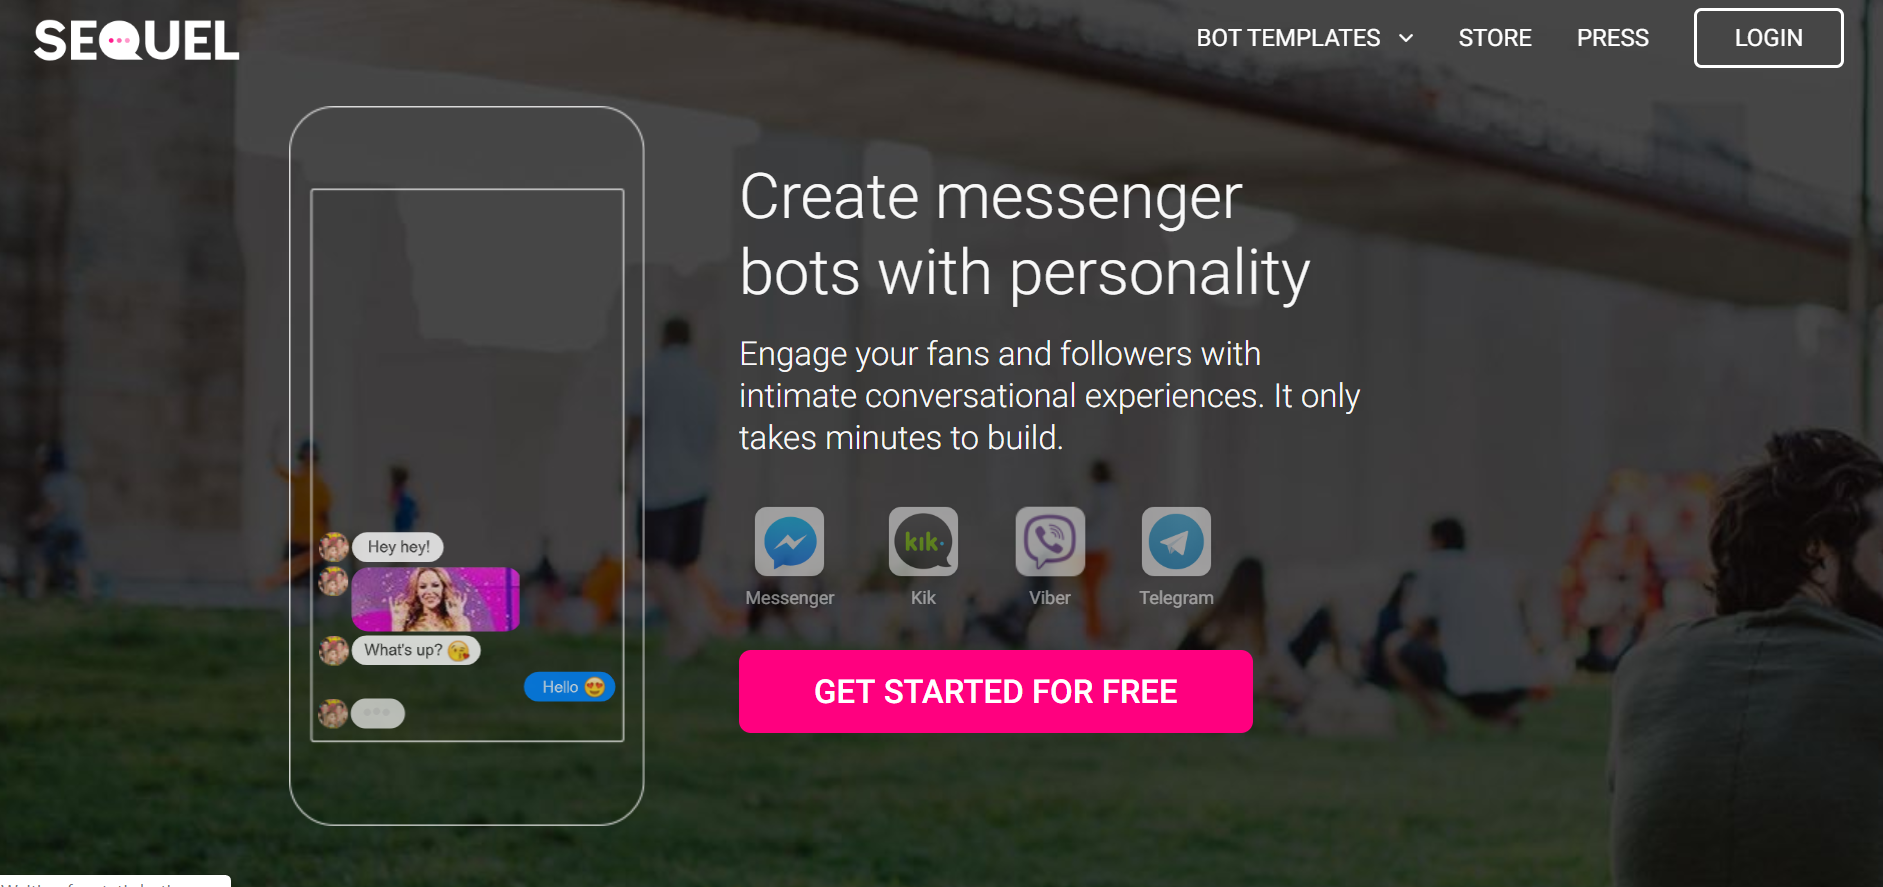 best chatbots for marketing - Sequel